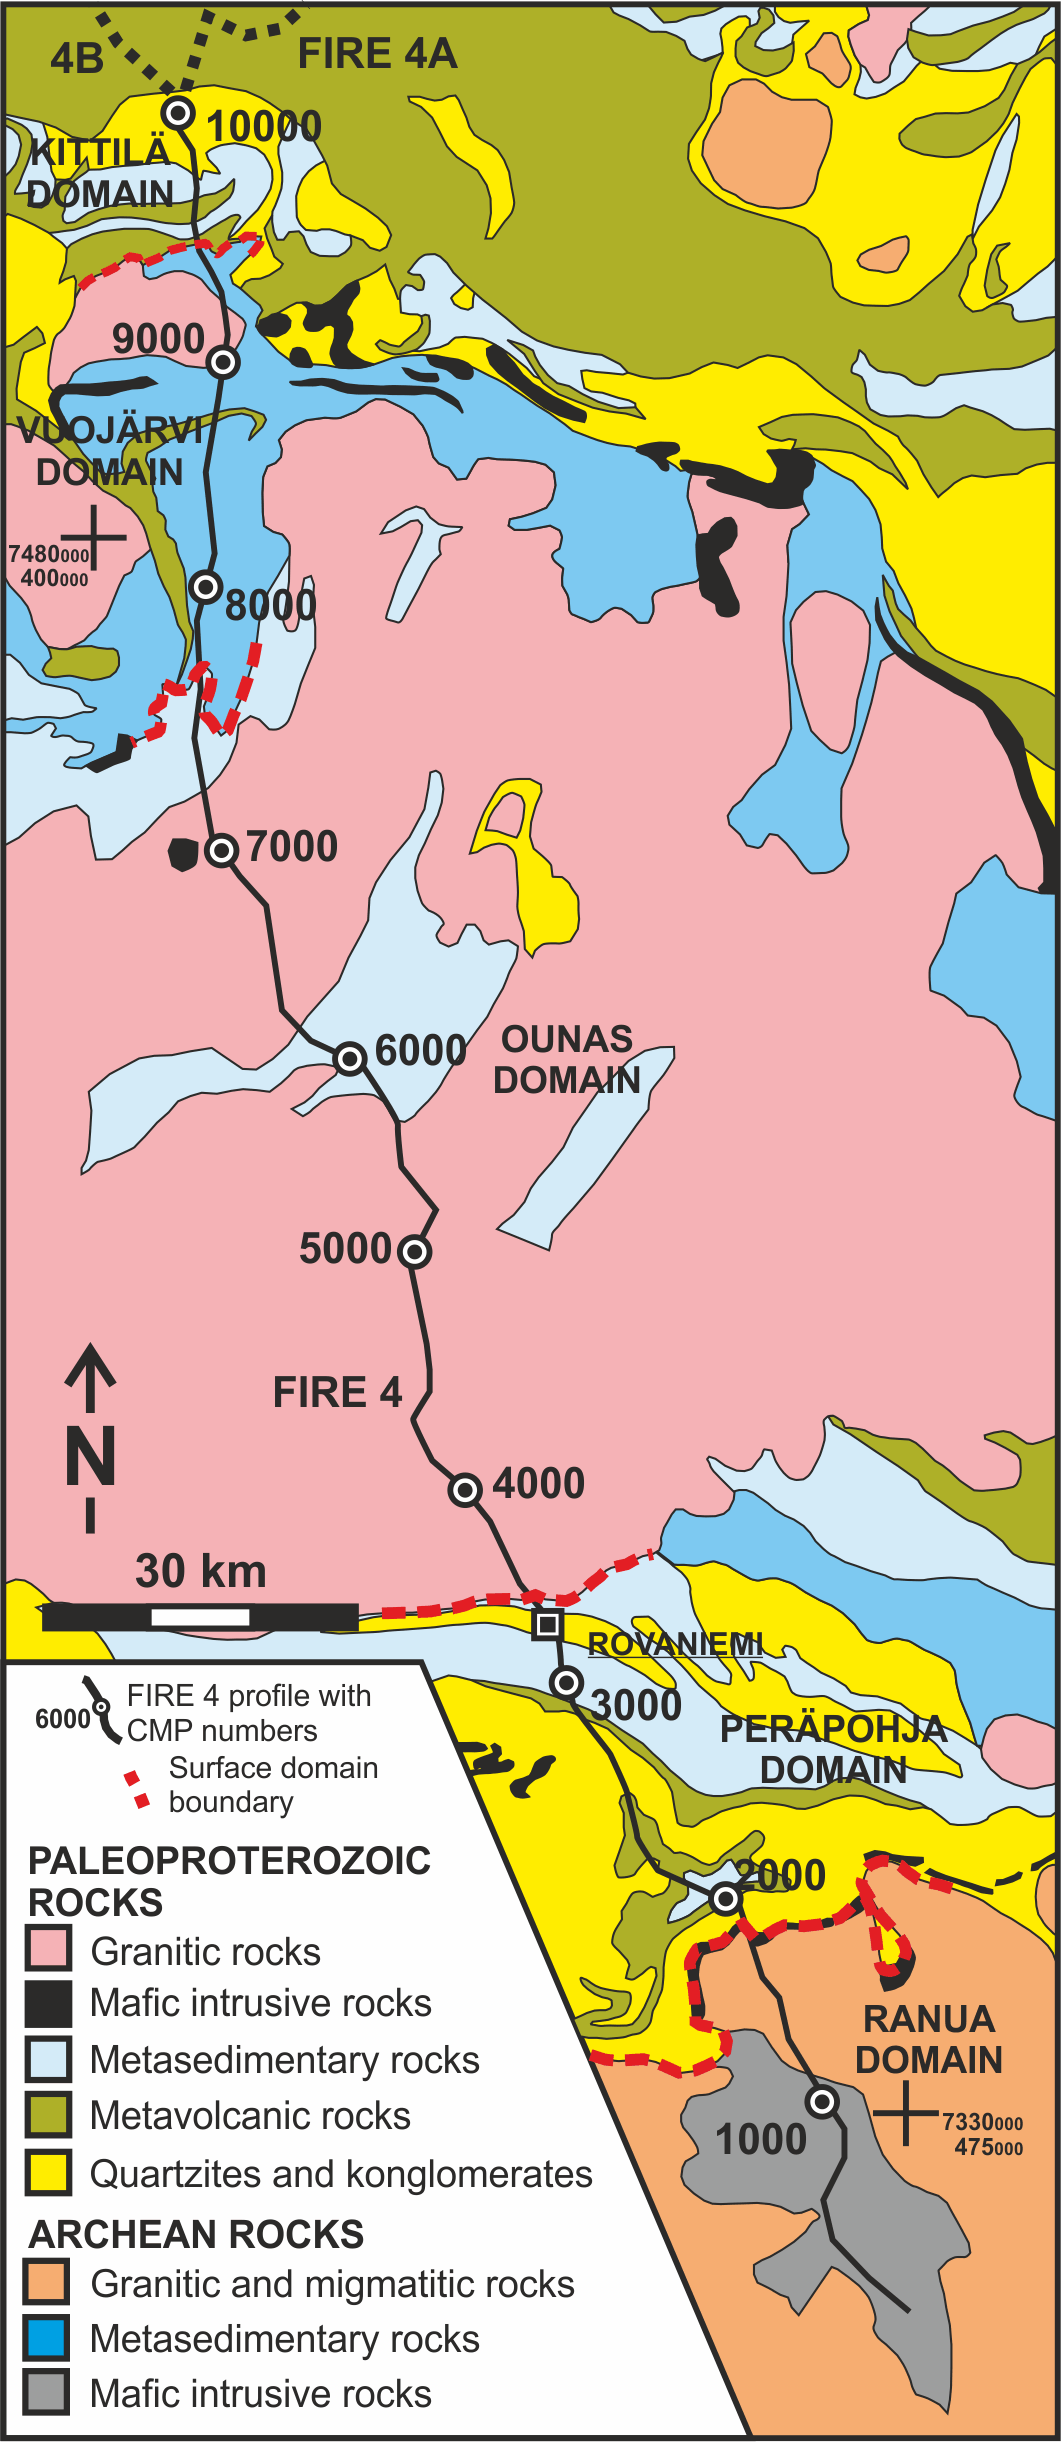 FIRE 4 survey line on top of the geological map